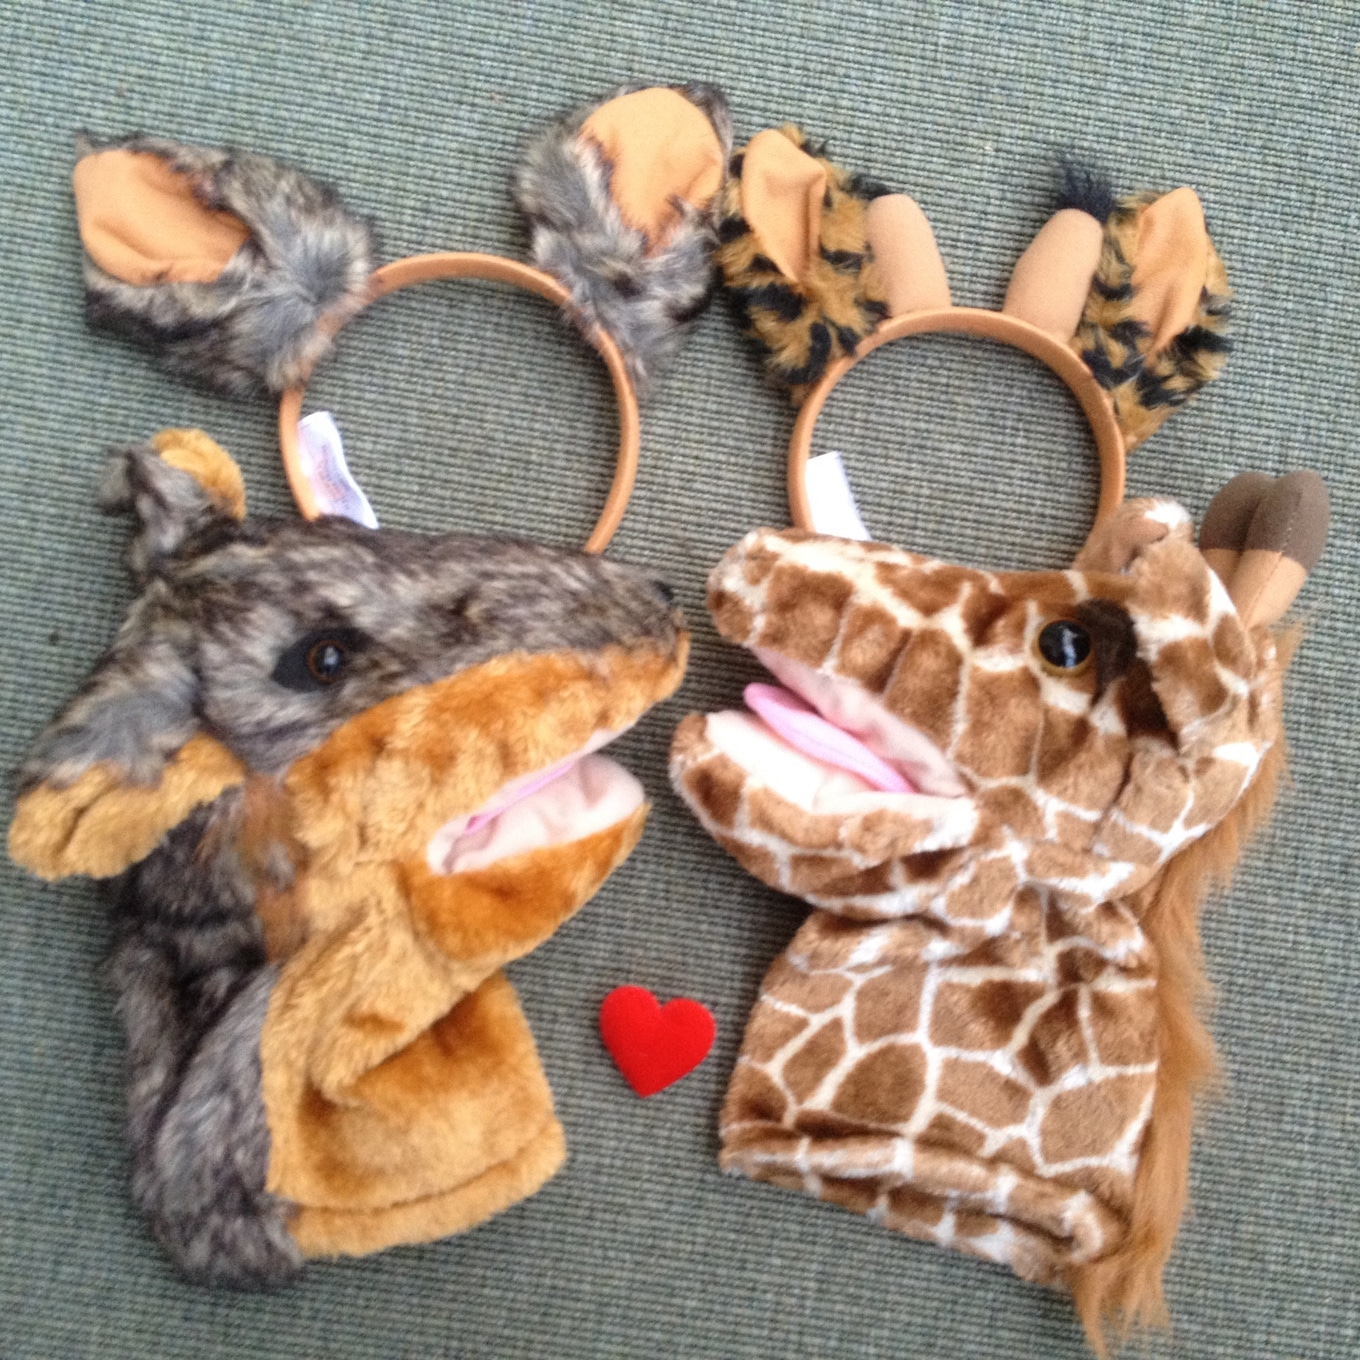 Jackal and Giraffe ears and puppets